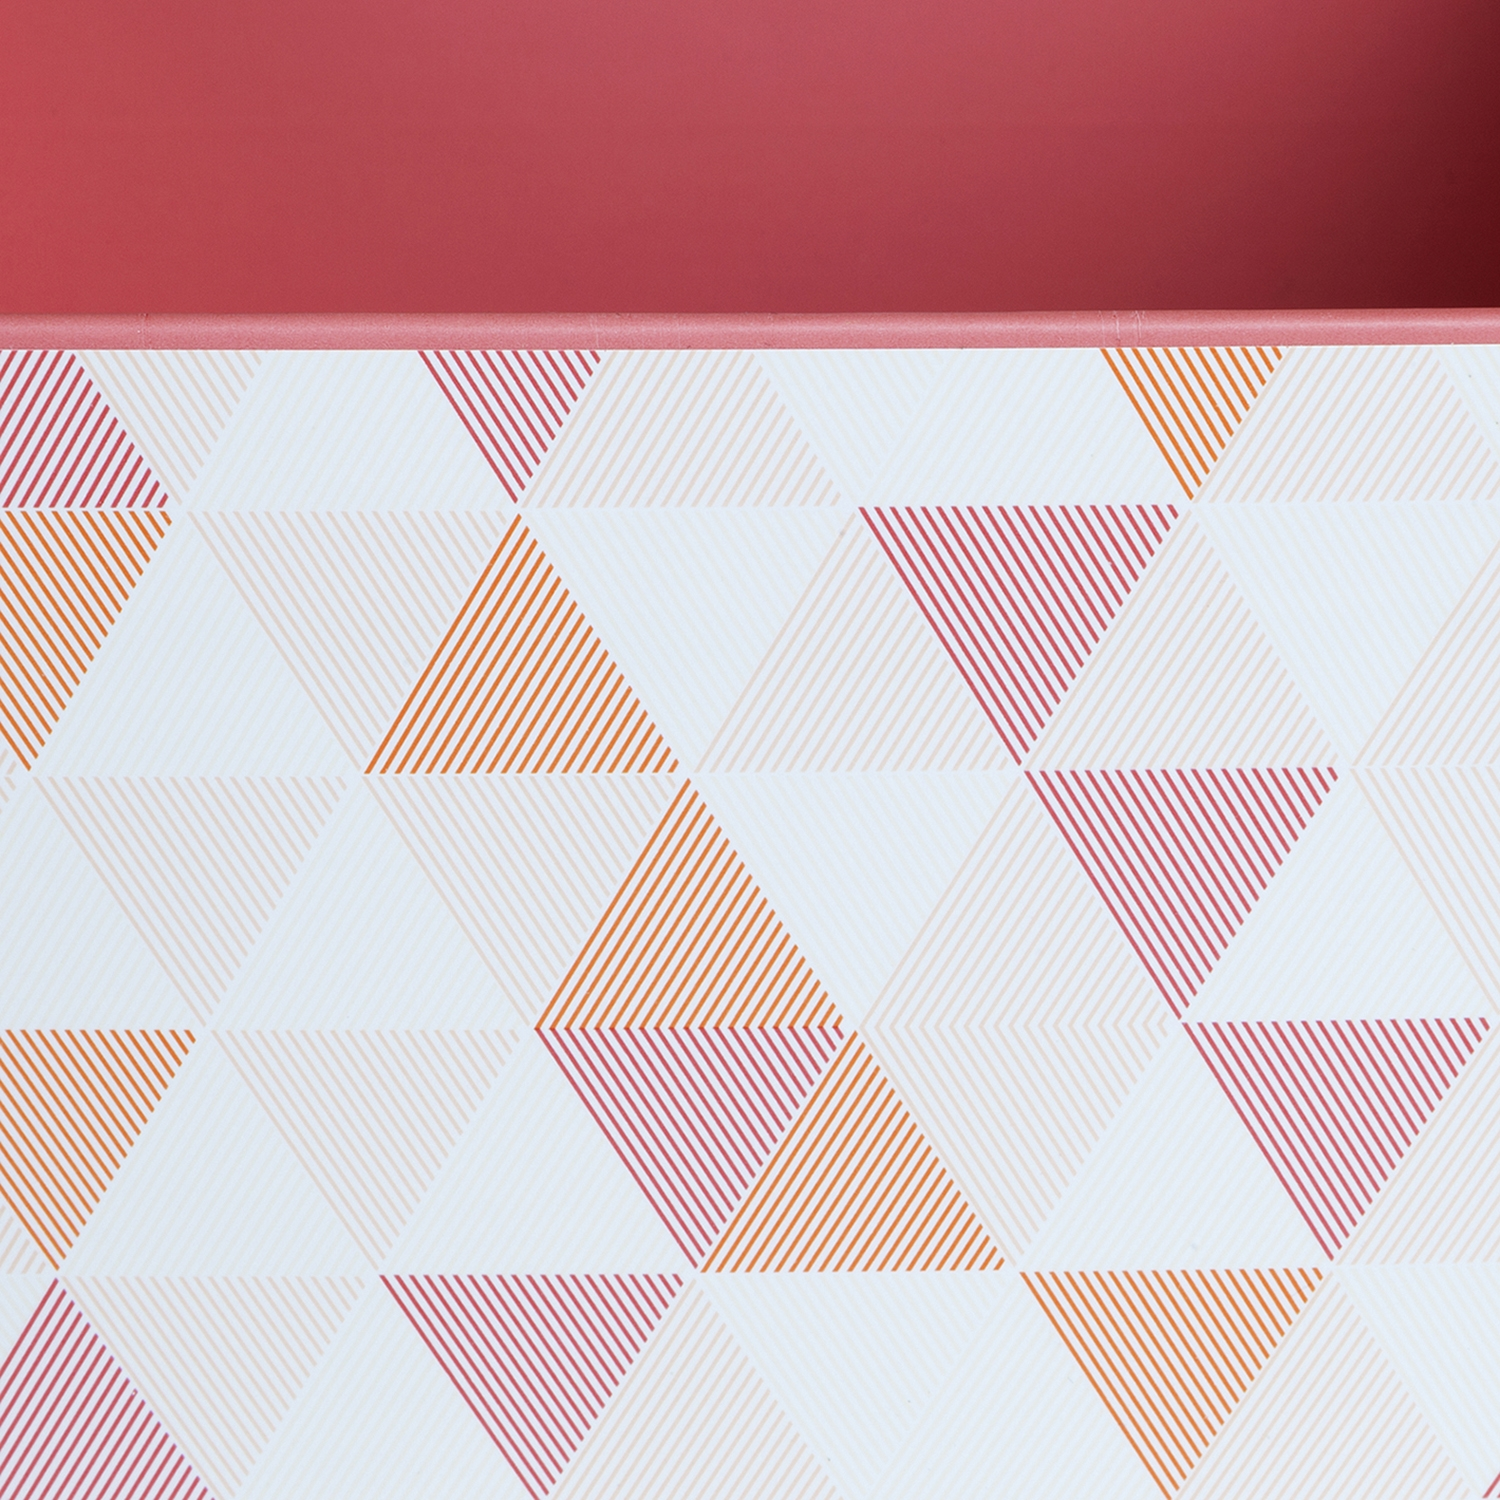 Storit 3 Printed Cardboard Boxes and 1 Pencil Cup - Pattern, White and Pink - SS-100058